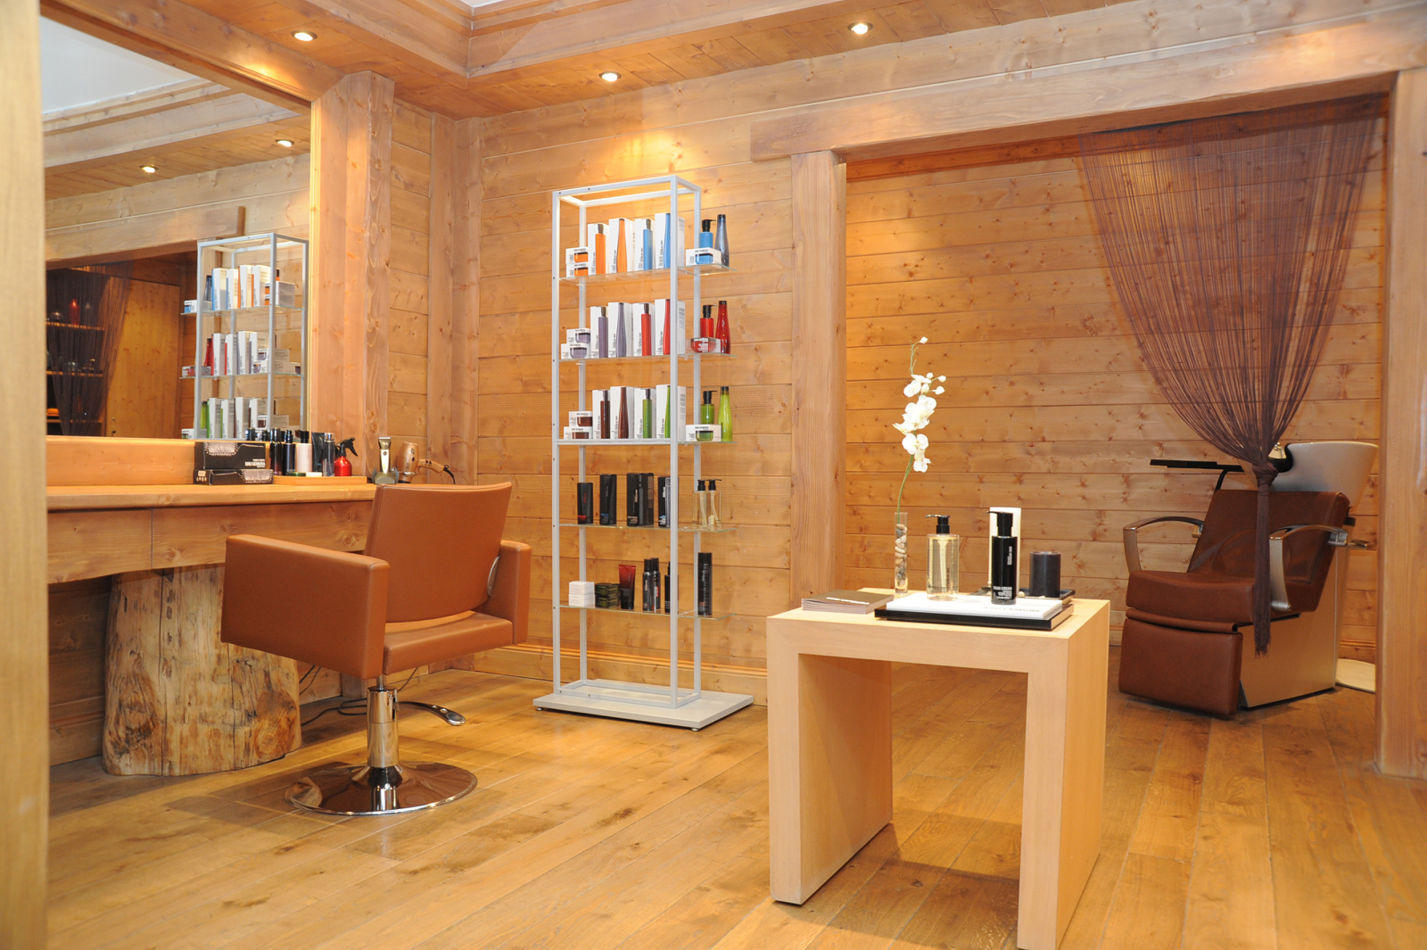 31-salon-de-coiffure-hairdressing-salon